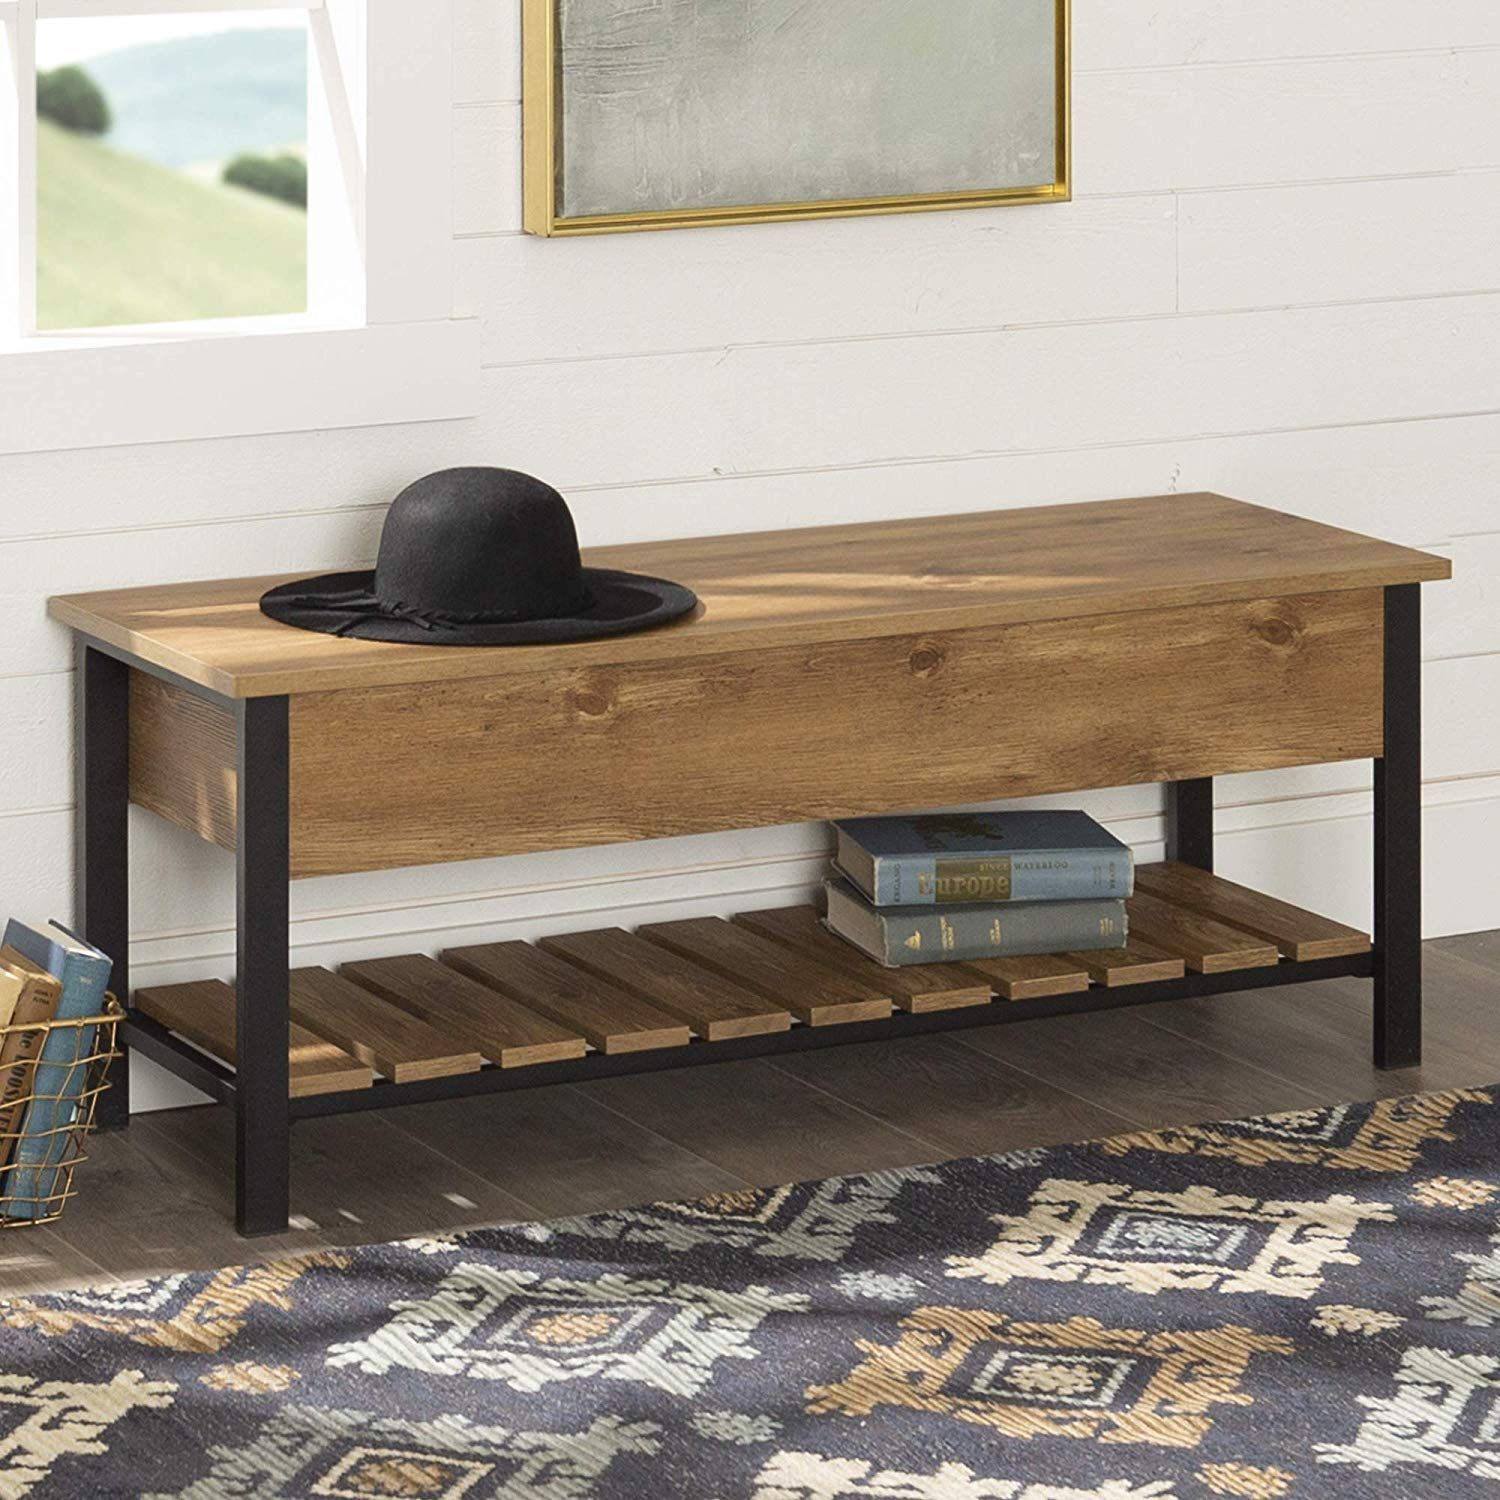 WE Furniture OpenTop Storage Bench, Barnwood